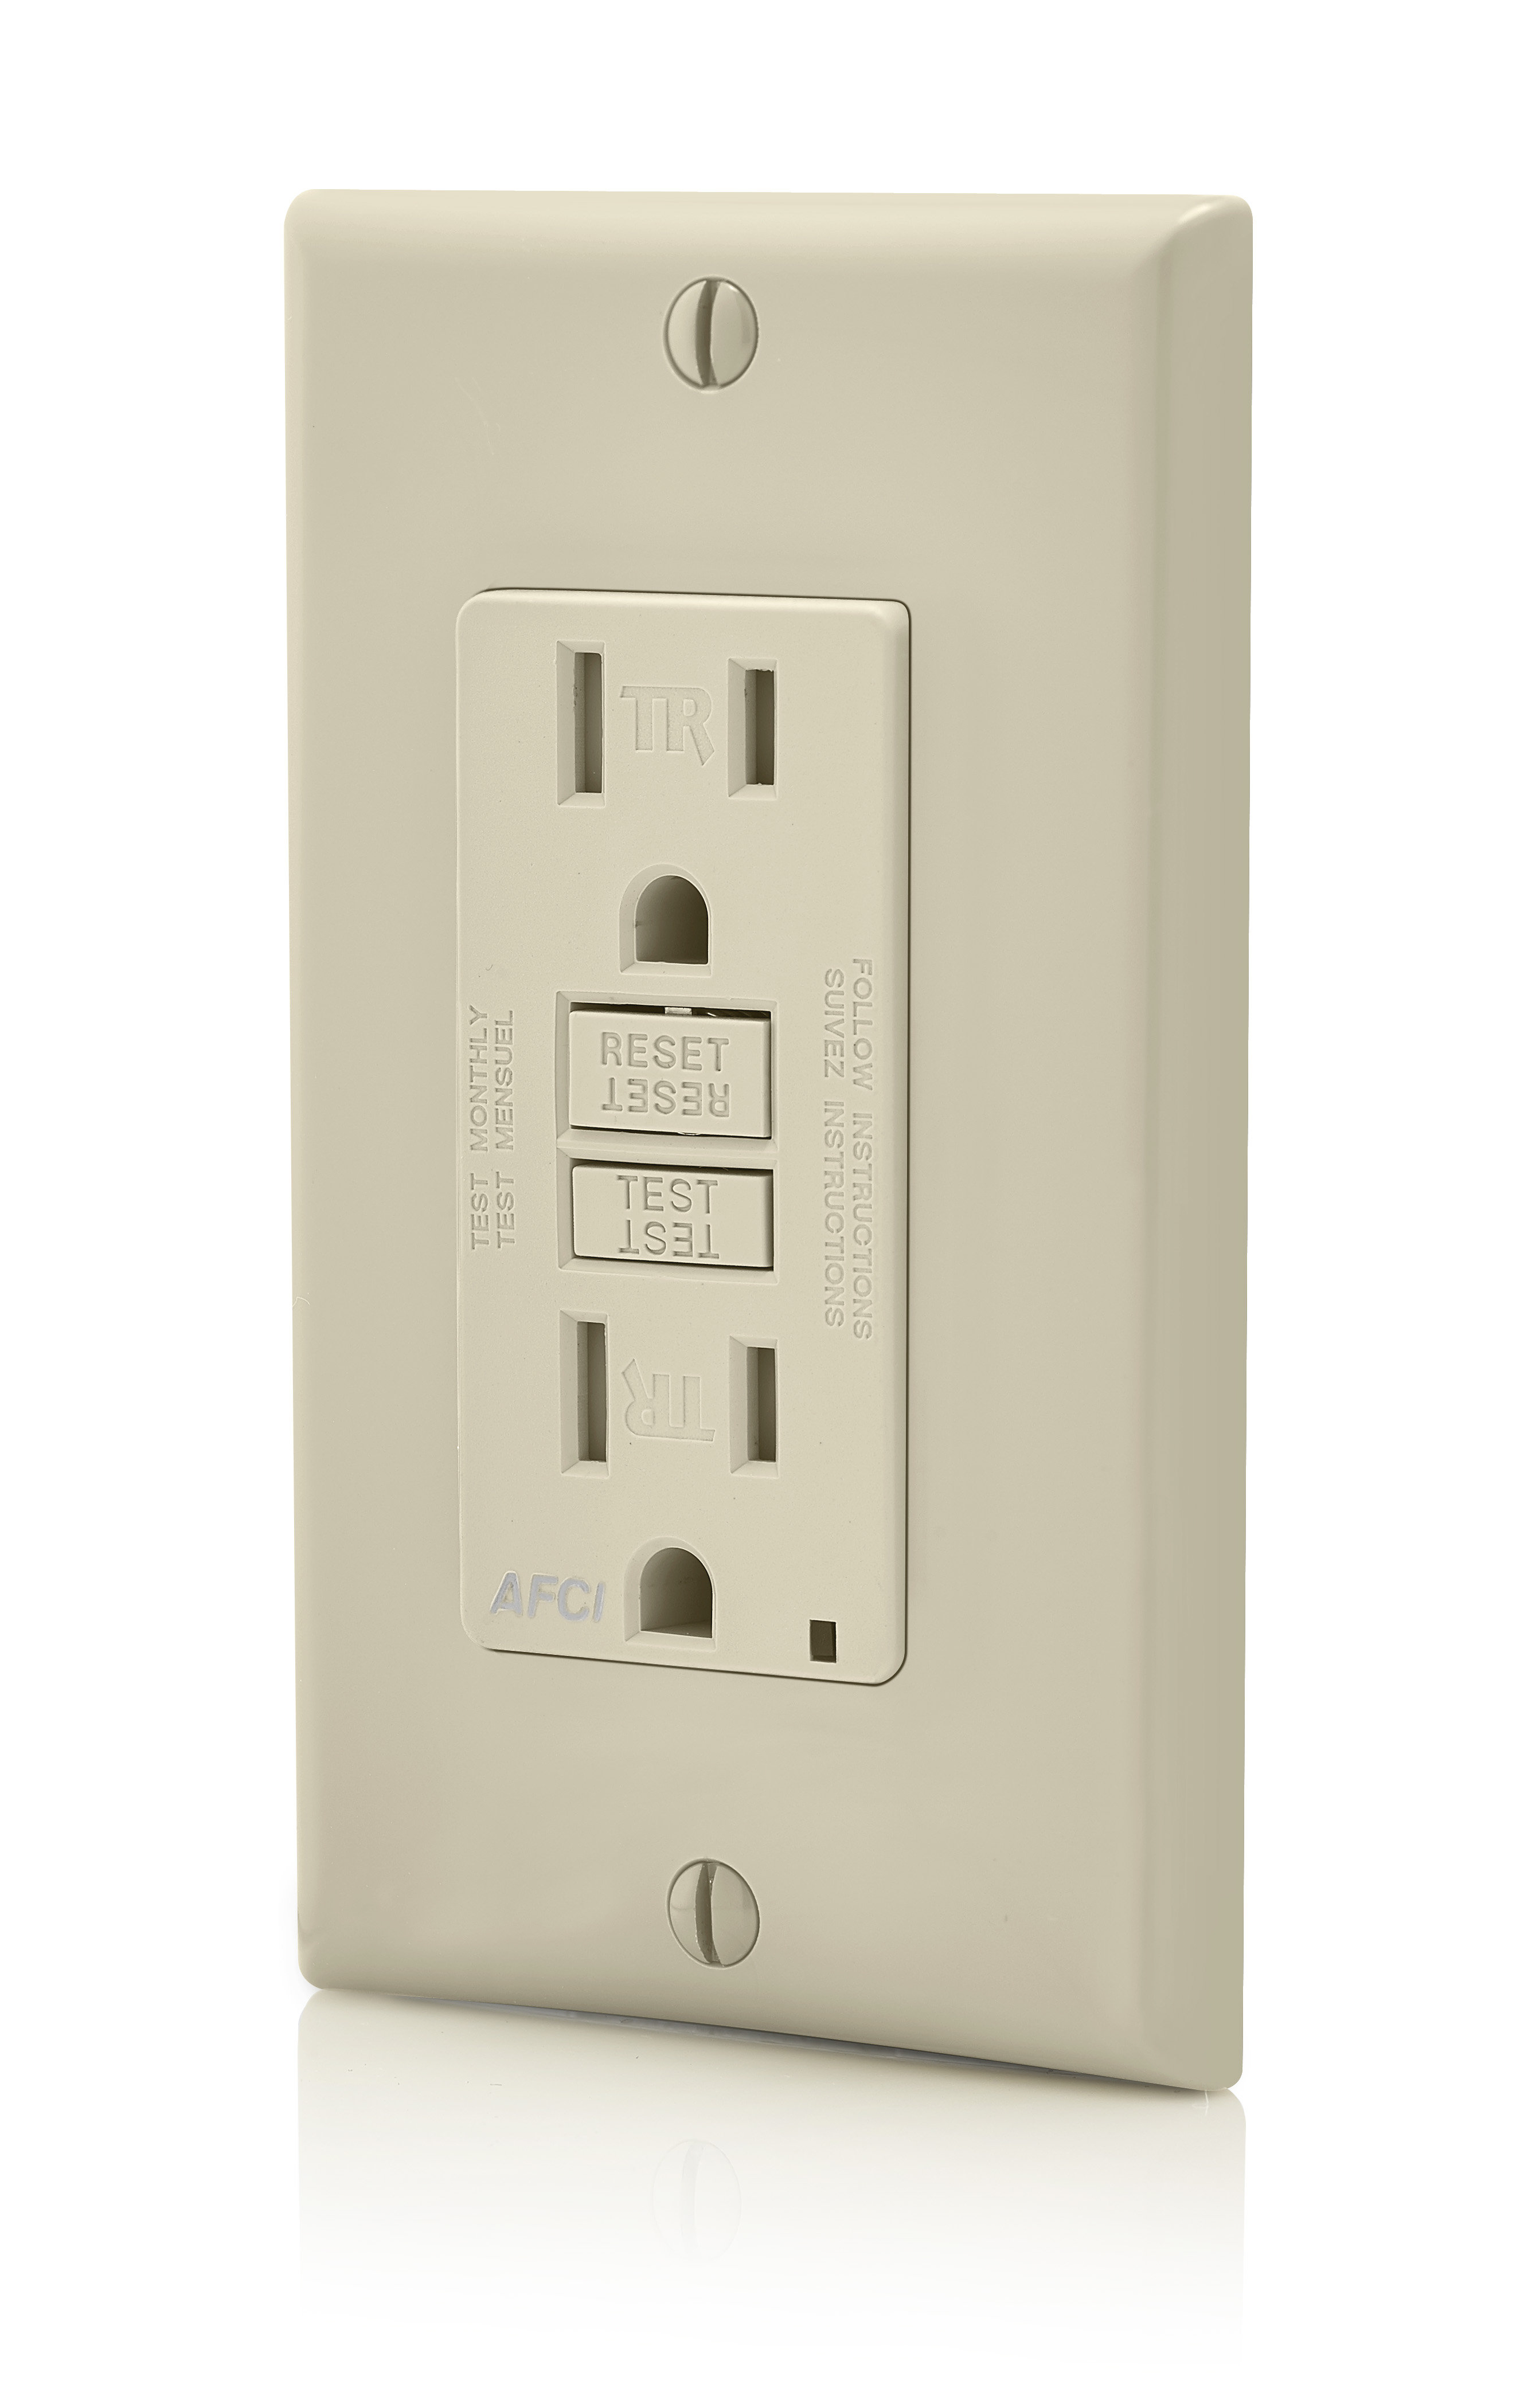 arc fault receptacle wiring with B00agyt6za on 536135 Wiring Kitchen Counter Outlets additionally Leviton Unveils Smartlockpro Dual Function Afci Gfci Receptacle 18386 besides Iec Symbol Reference moreover Arc Fault Circuit Interrupter Afci Receptacles 513 moreover 2418.